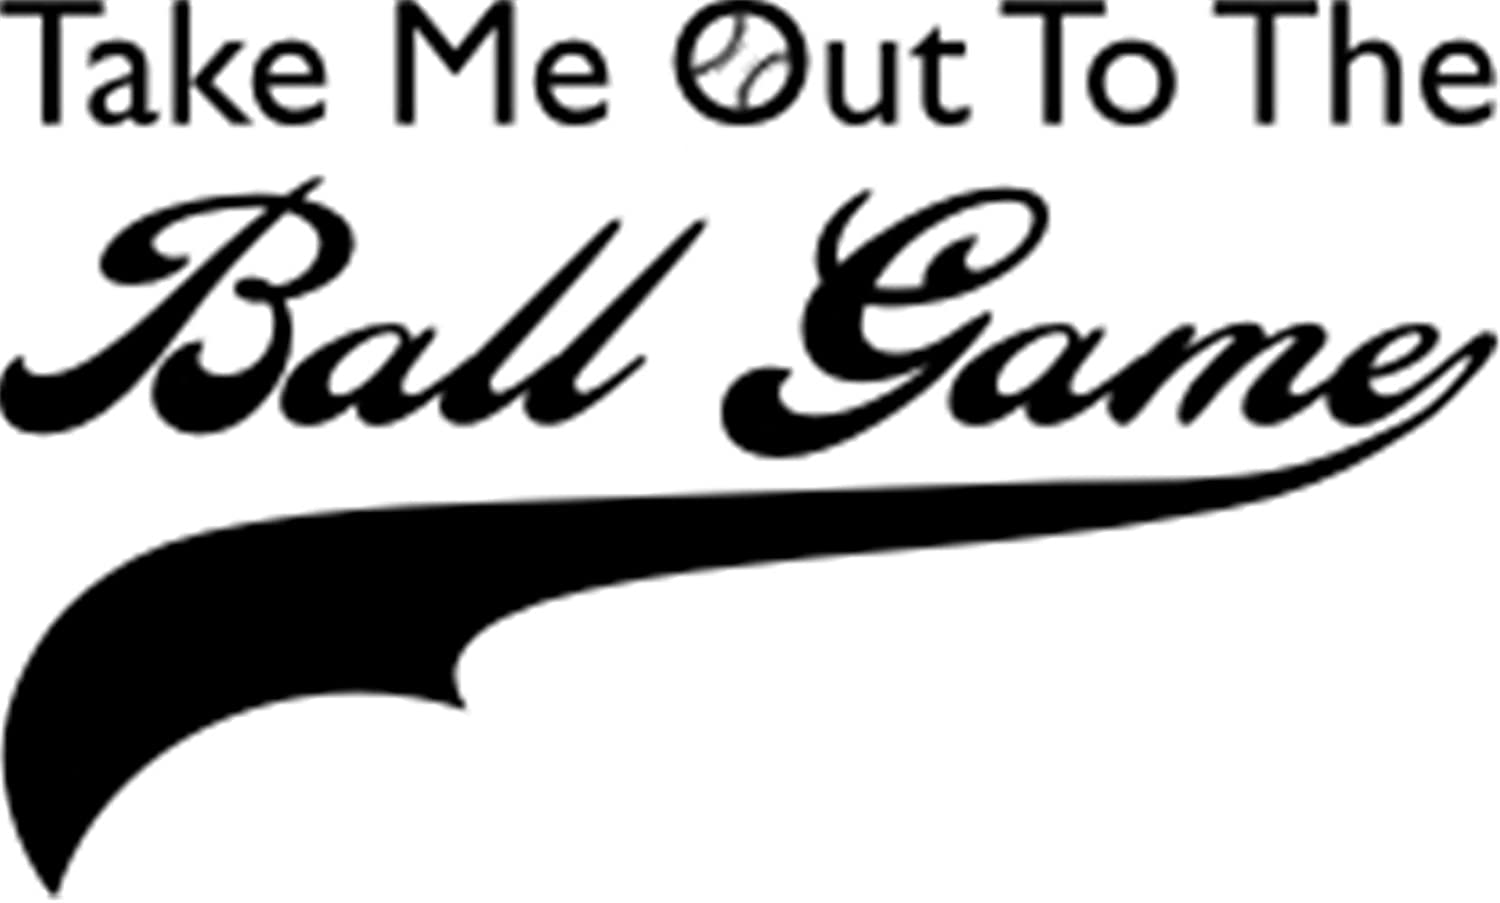 Vinyl Wall Lettering Stickers Quotes And Saying Take Me Out To The Ball Game For Playroom Nursery Kids Room Boys Room